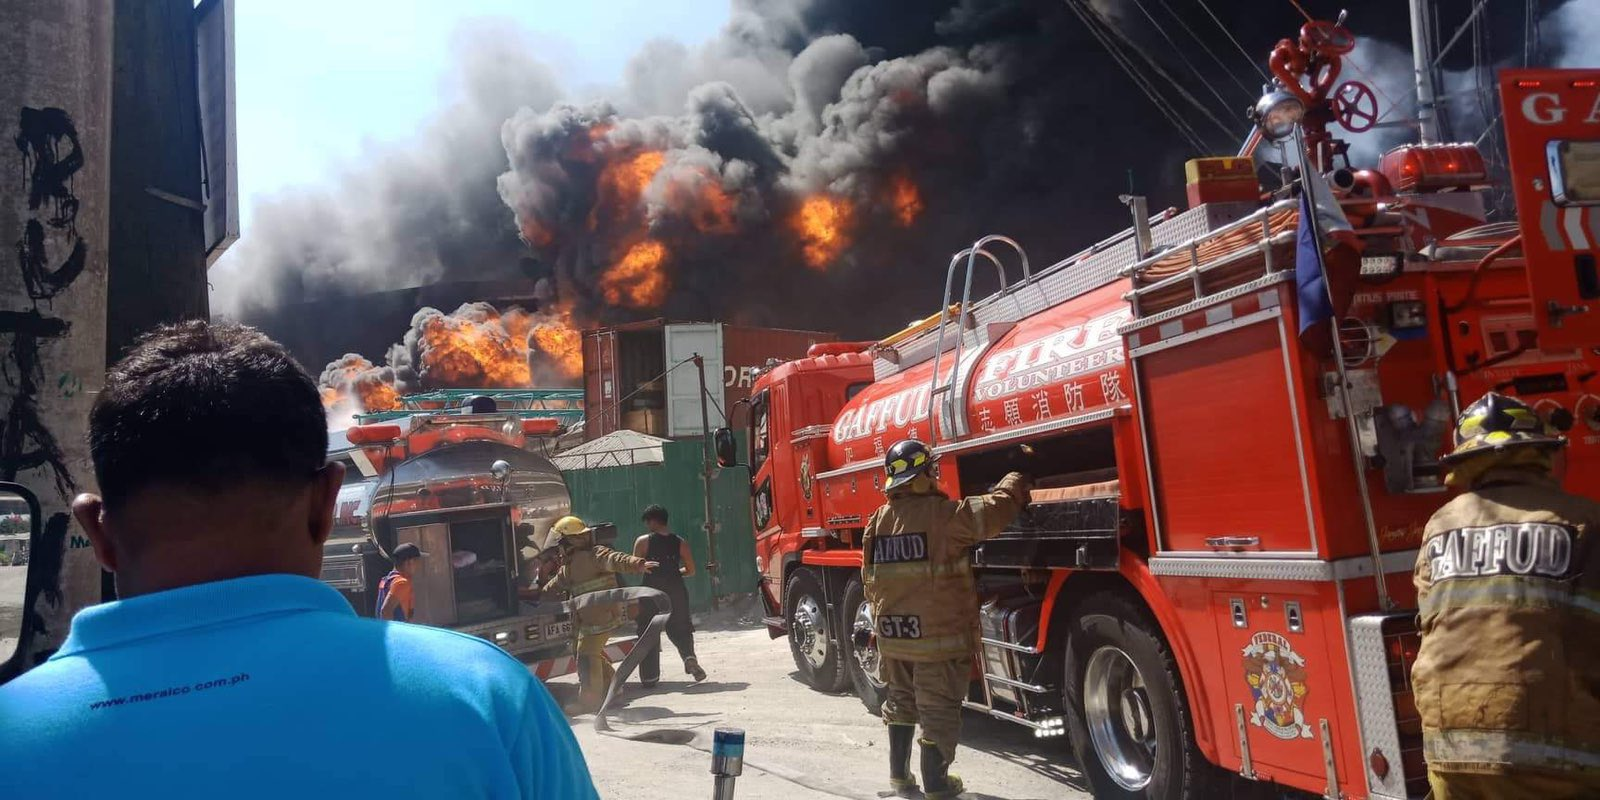 PANDACAN FIRE. Firemen try to put out a huge fire at a warehouse in Pandacan, Manila, on February 1, 2020. Photo from Manila Public Information OfficeTwitter @ManilaPIO